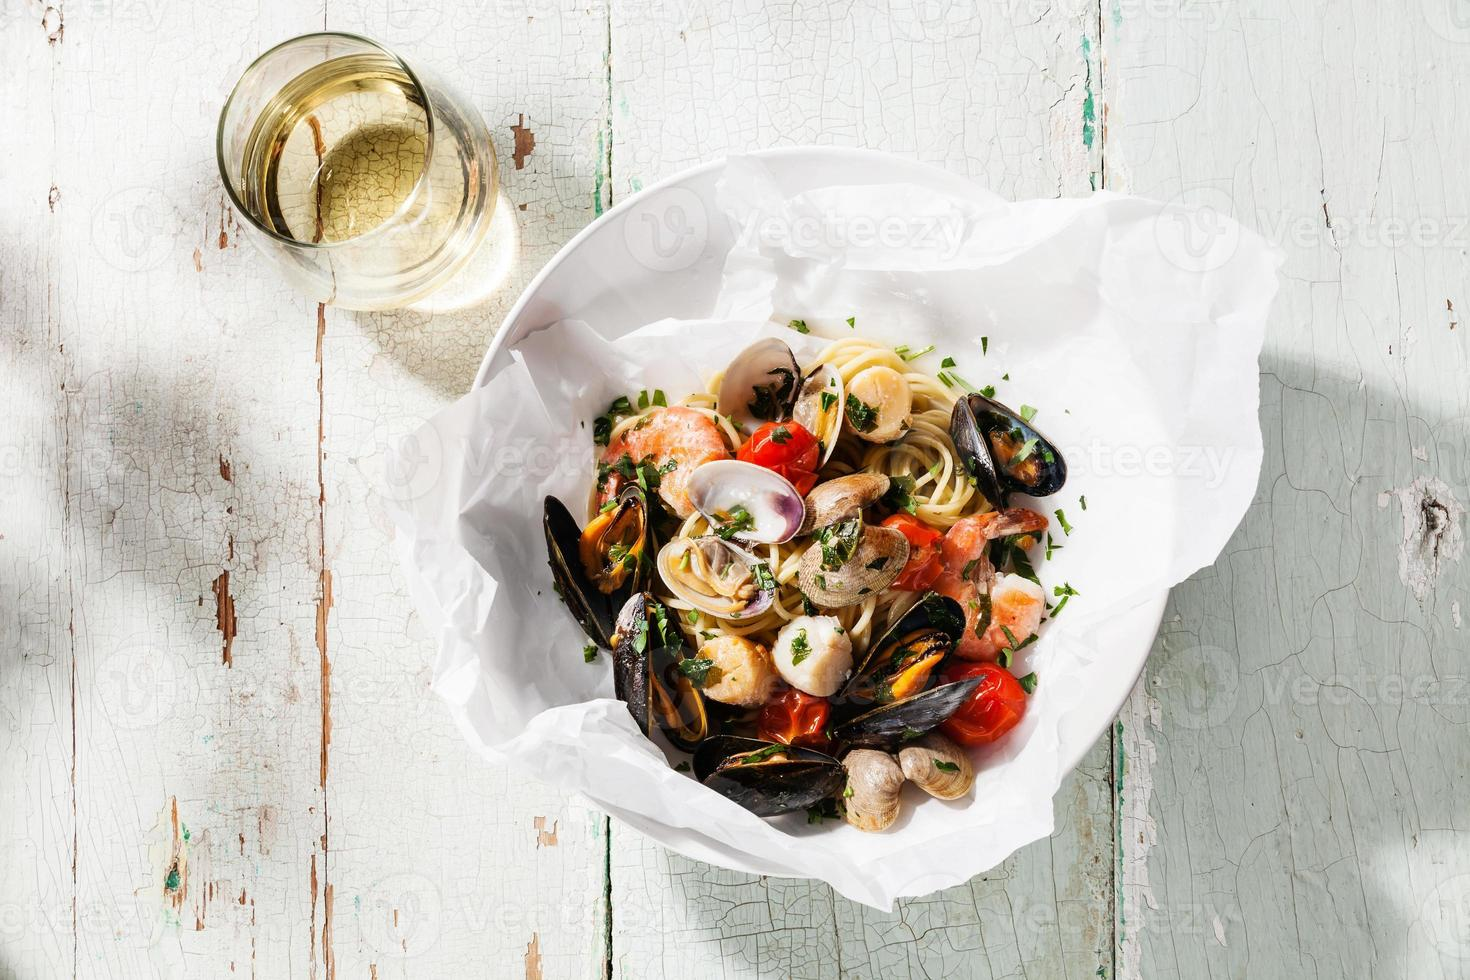 Seafood pasta and wine photo